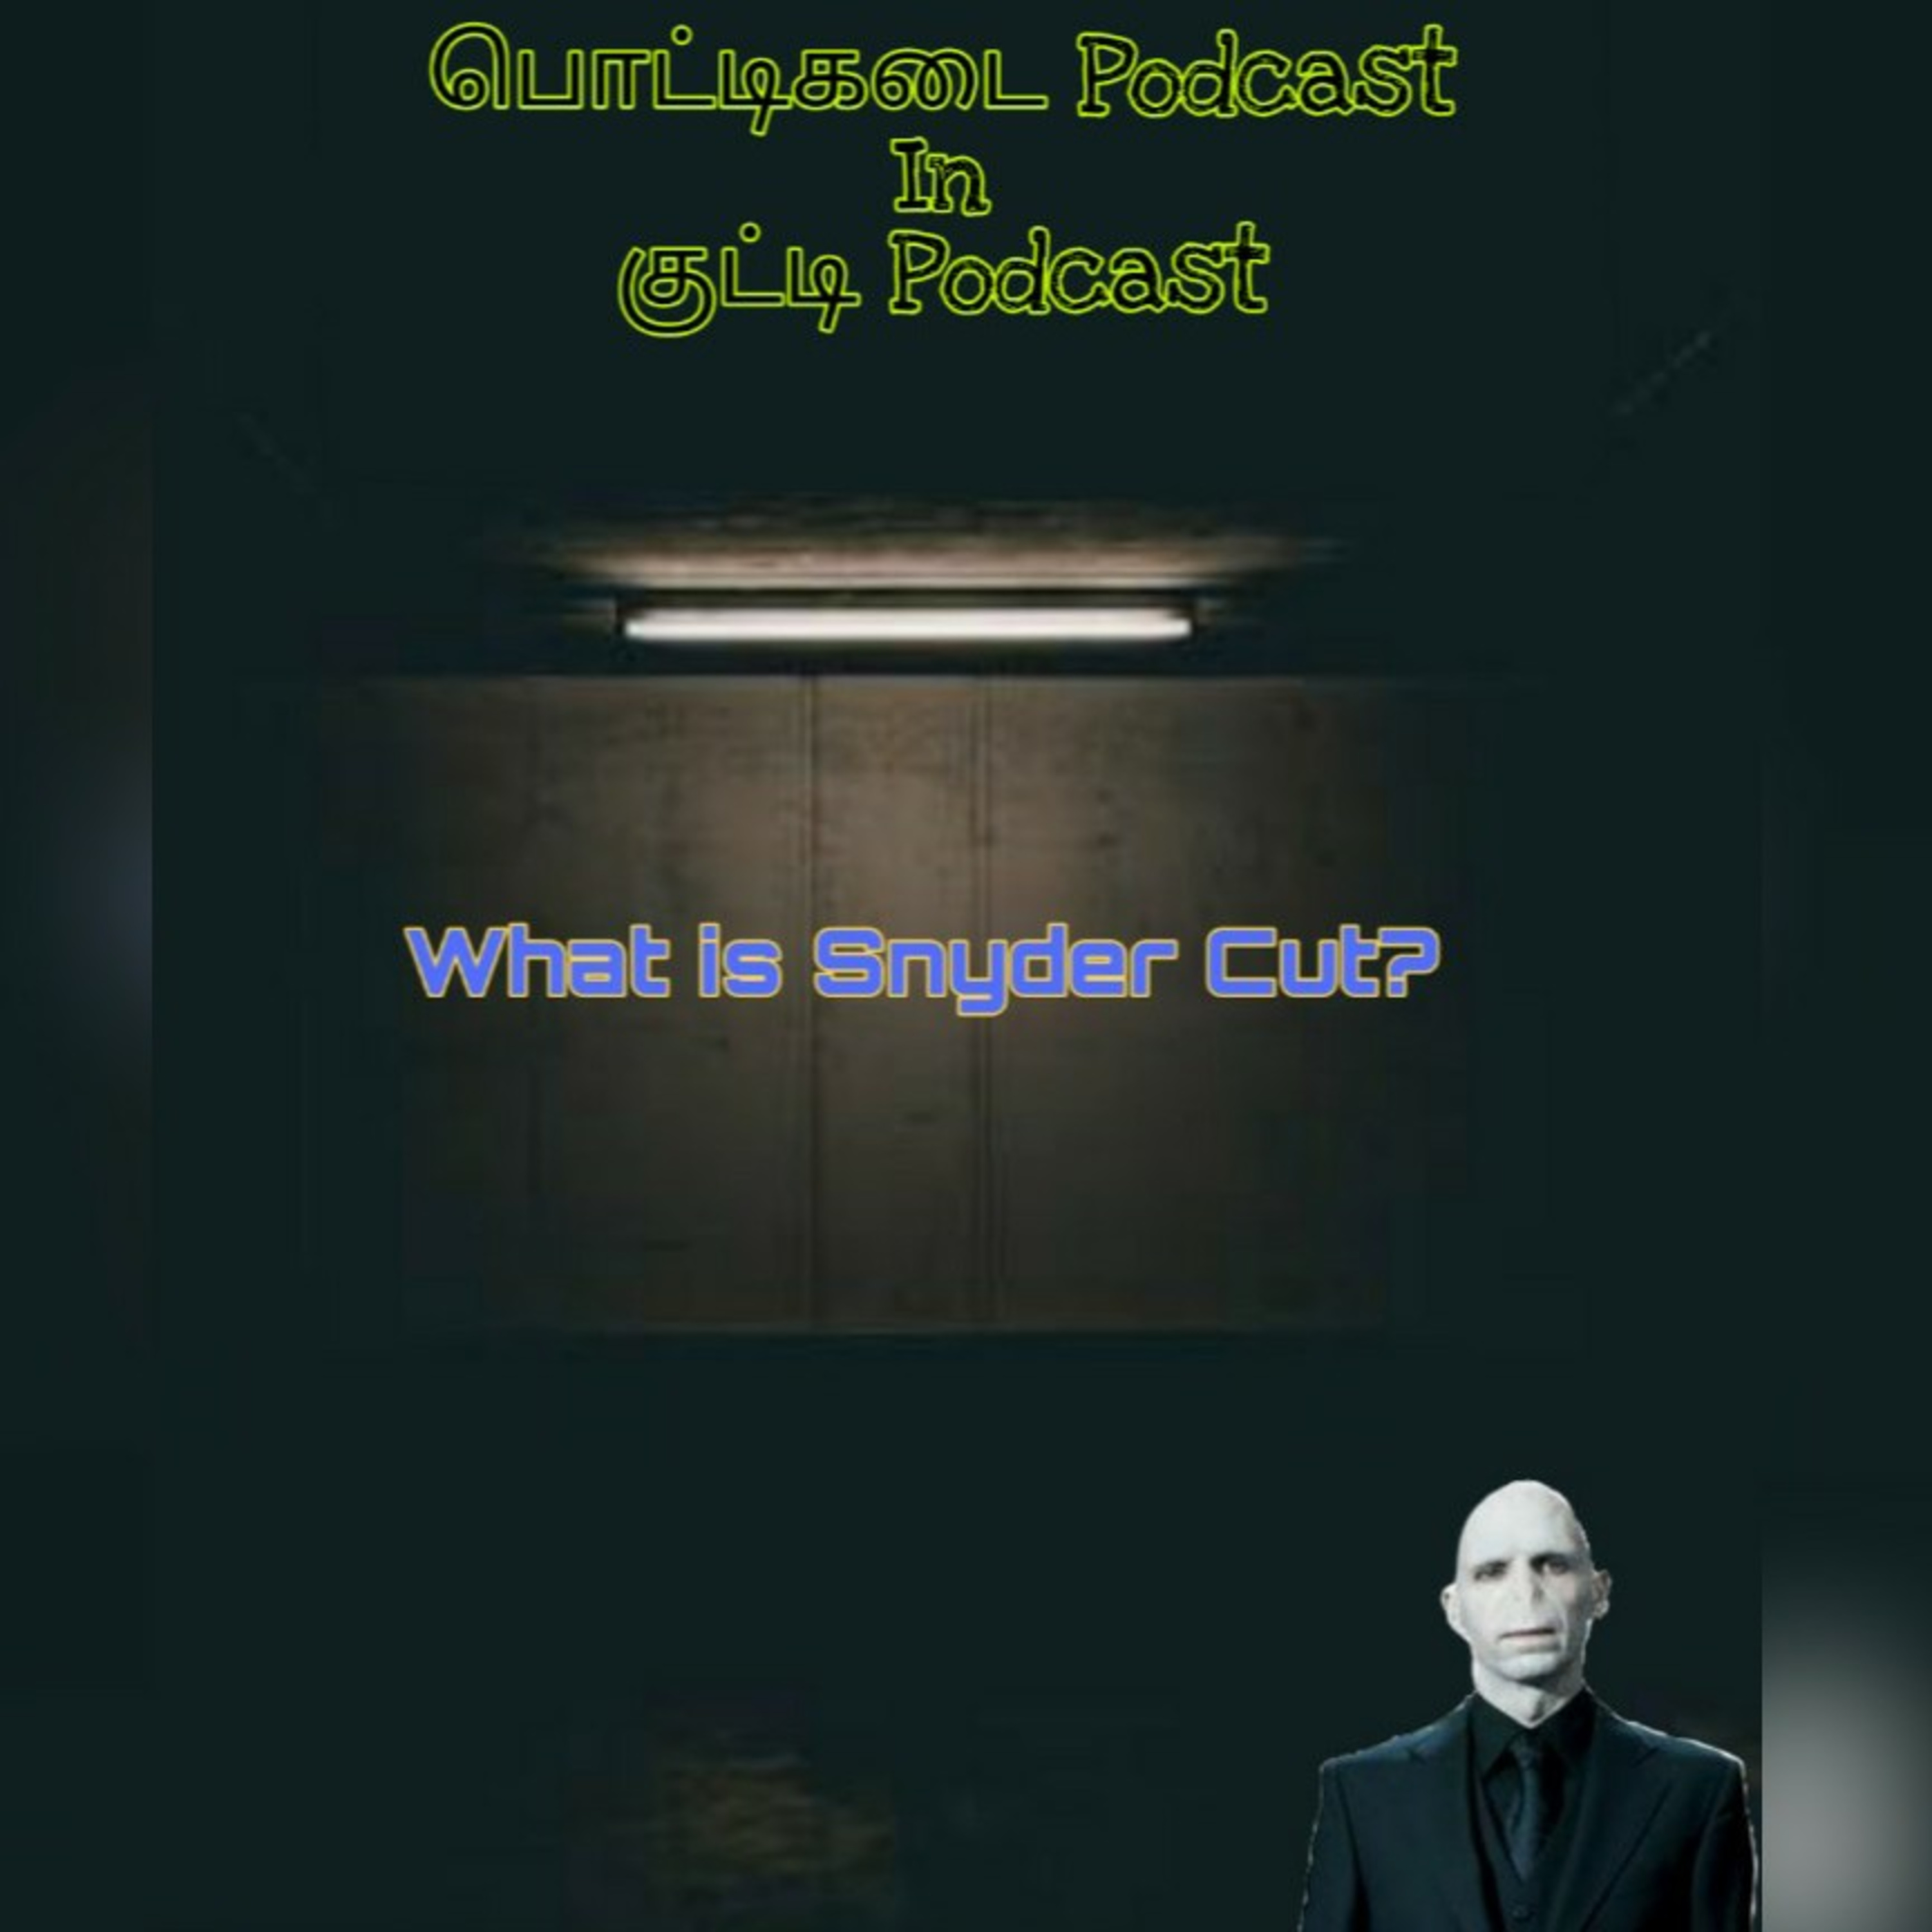 What is Snyder Cut? What can we expect from Snyder?